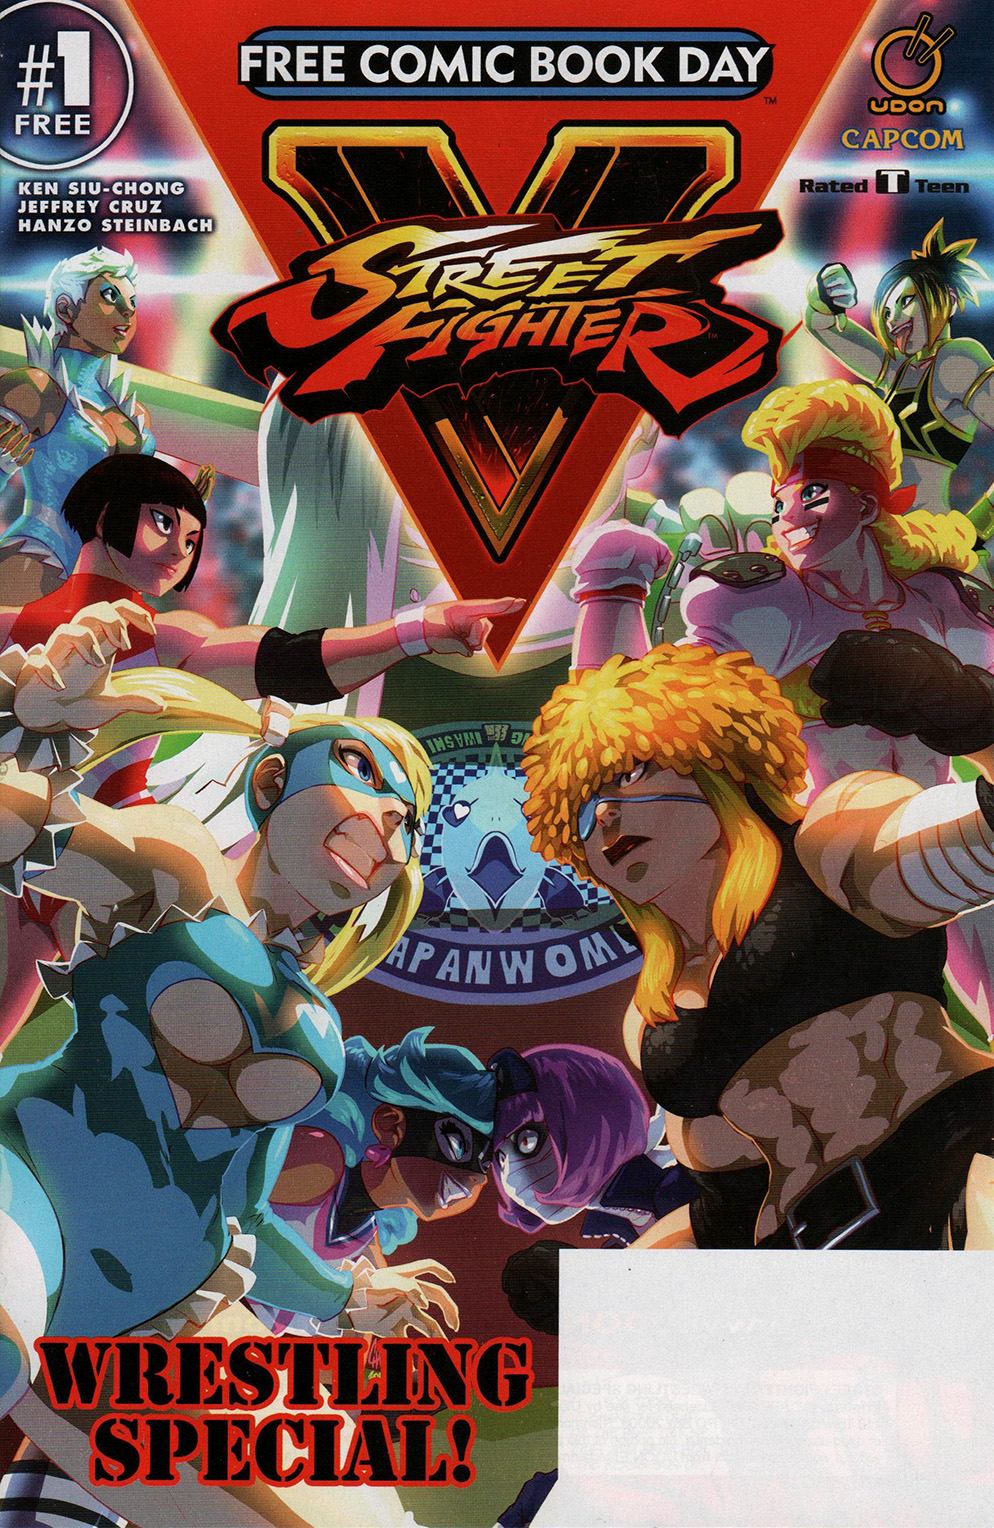 Read online Free Comic Book Day 2017 comic -  Issue # Street Fighter V - Wrestling Special - 1